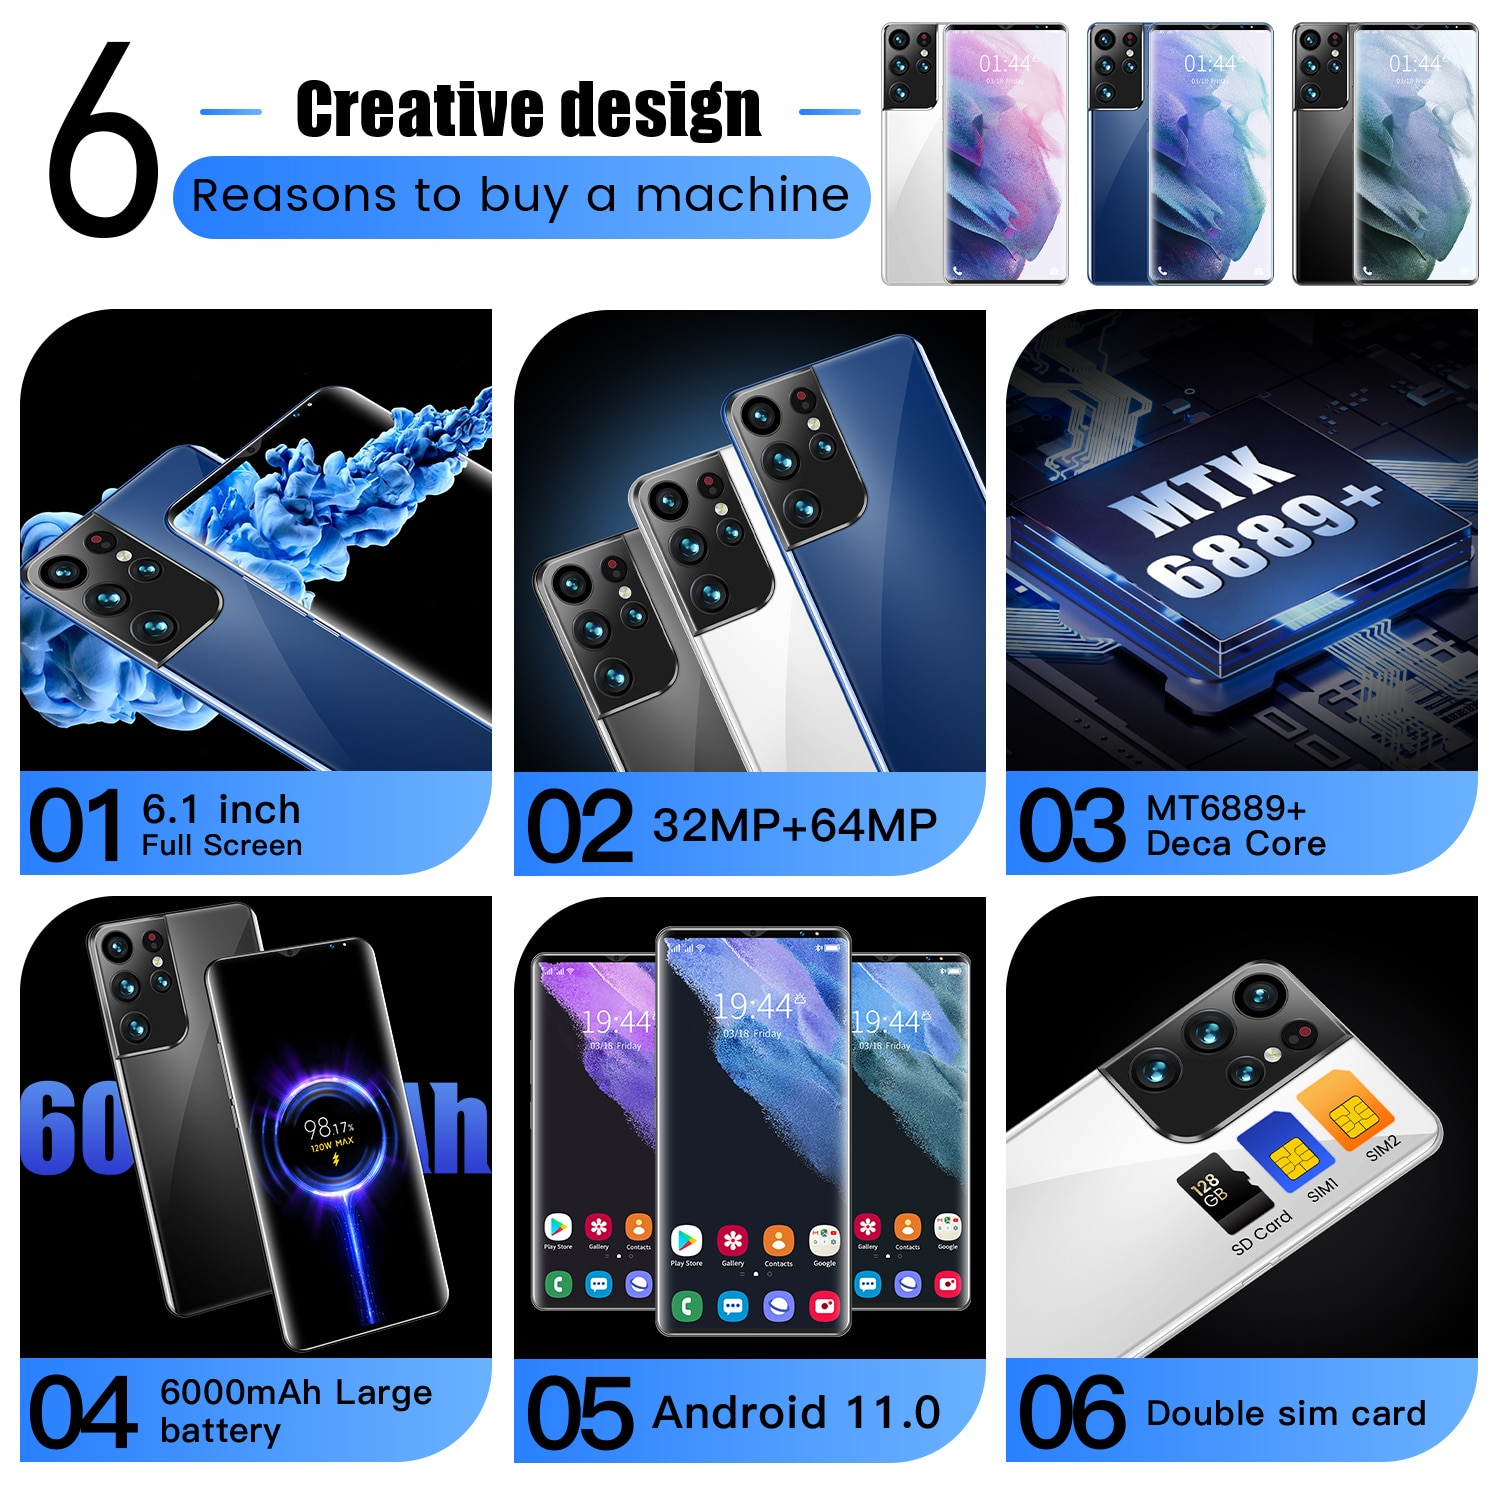 Global Version Smartphone S28 Pro+ 6.1 Inch 256GB/512GB Unlocked Android Mobile Phones 64MP Face ID GPS 4G/5G Smart Phone enlarge